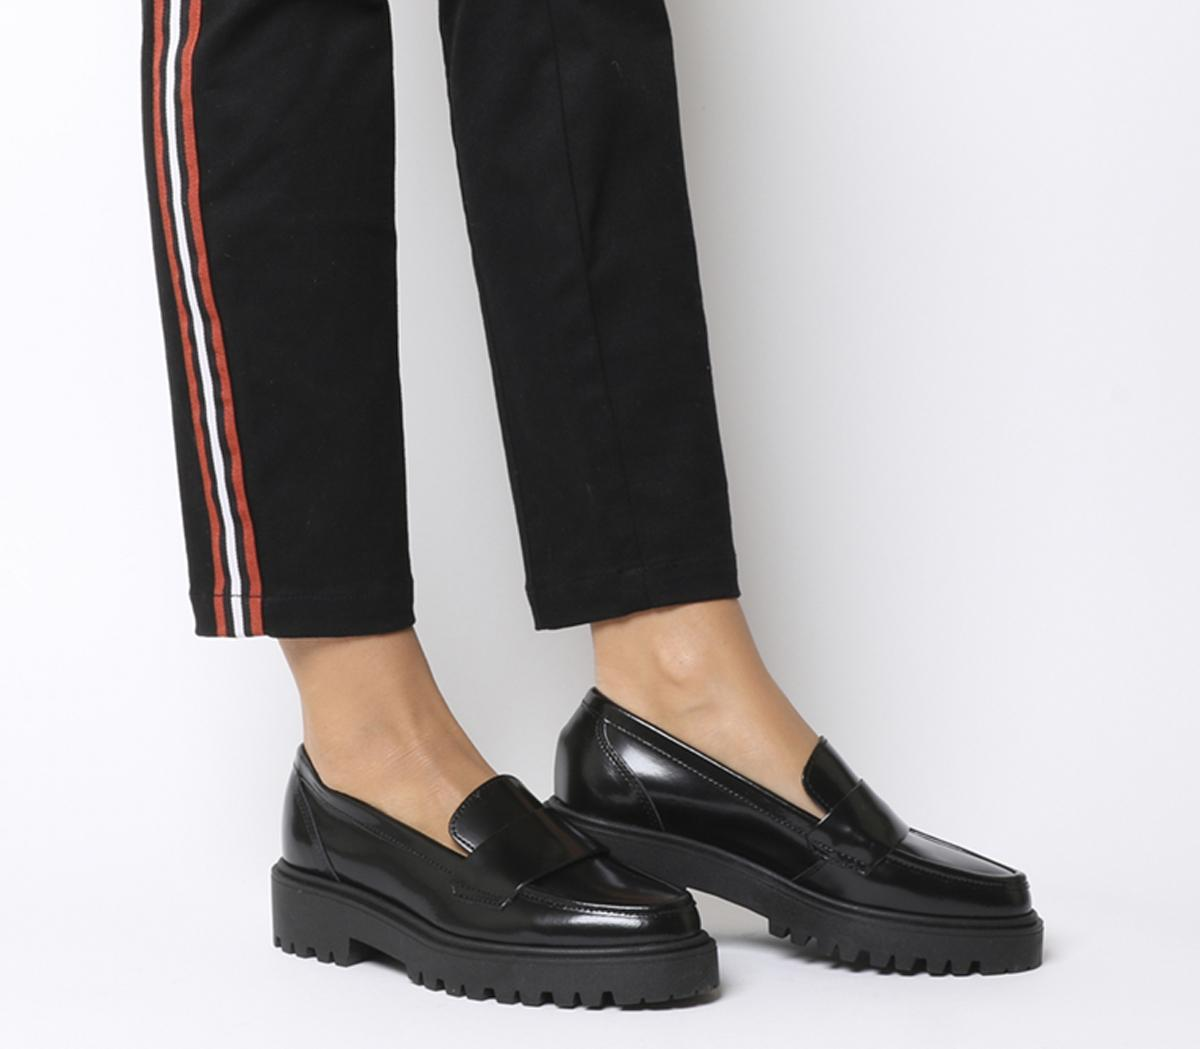 Black Box Leather - Back To School Shoes